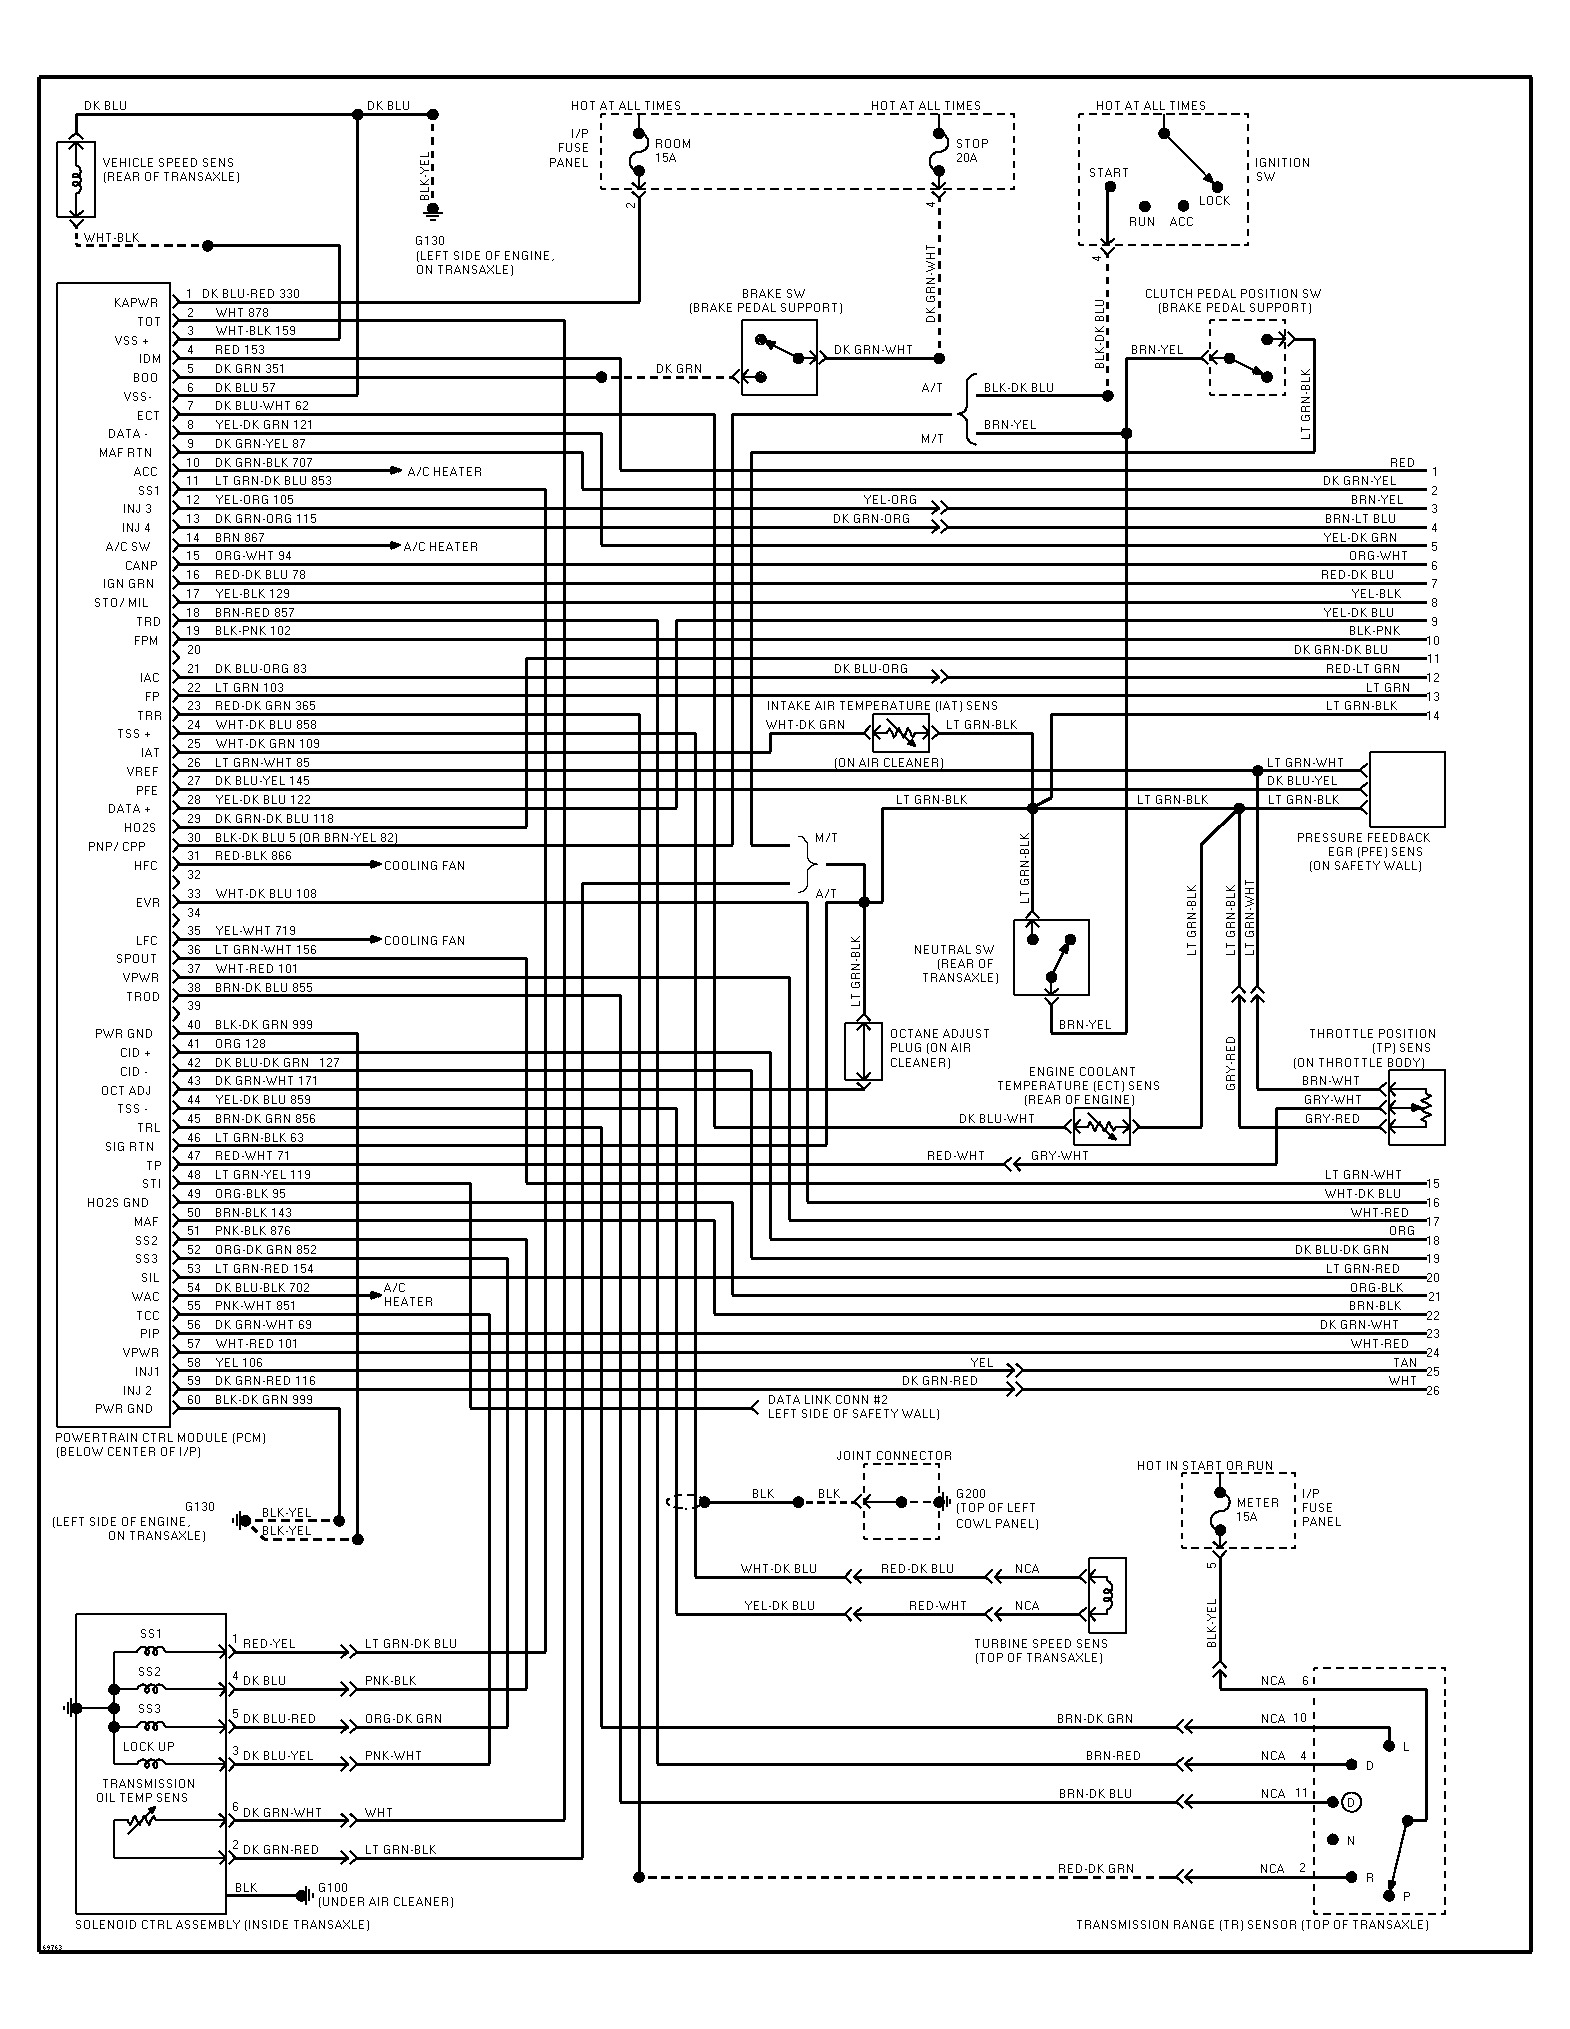 original 1995 ford escort wiring diagram i need to find a color coded 1998 ford escort wiring diagram at nearapp.co